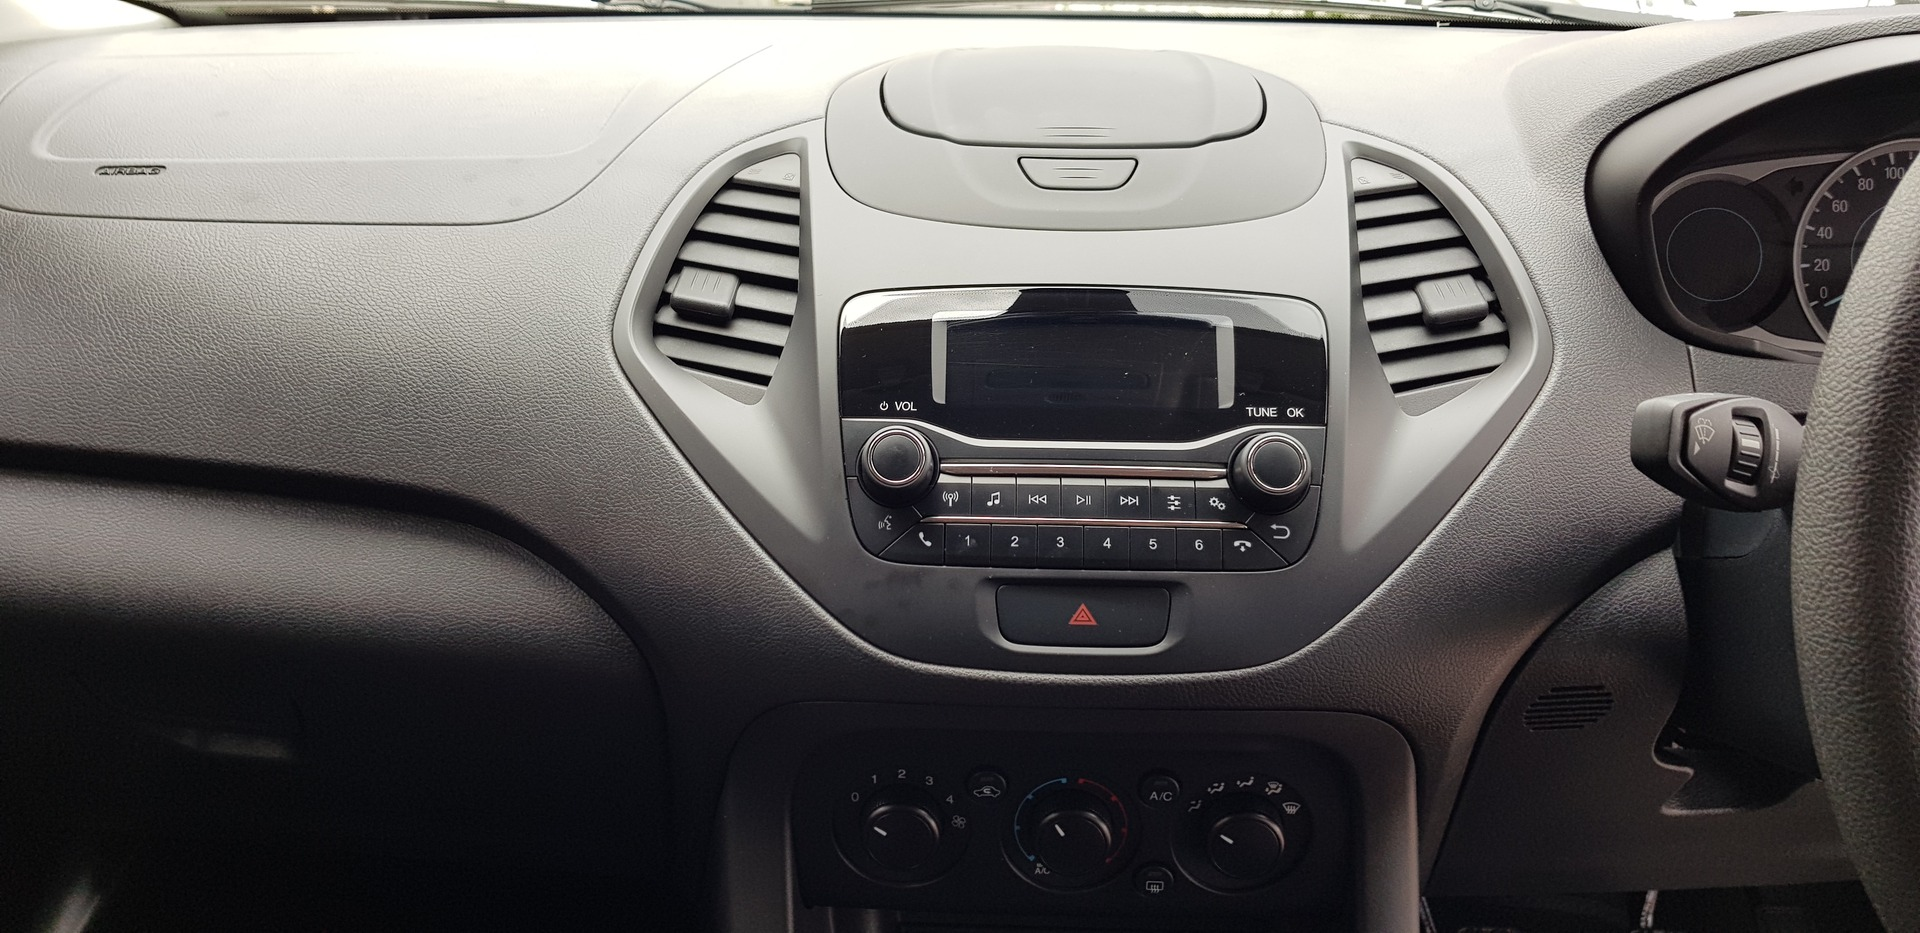 FORD 1.5Ti VCT AMBIENTE (5DR) Johannesburg 12332460